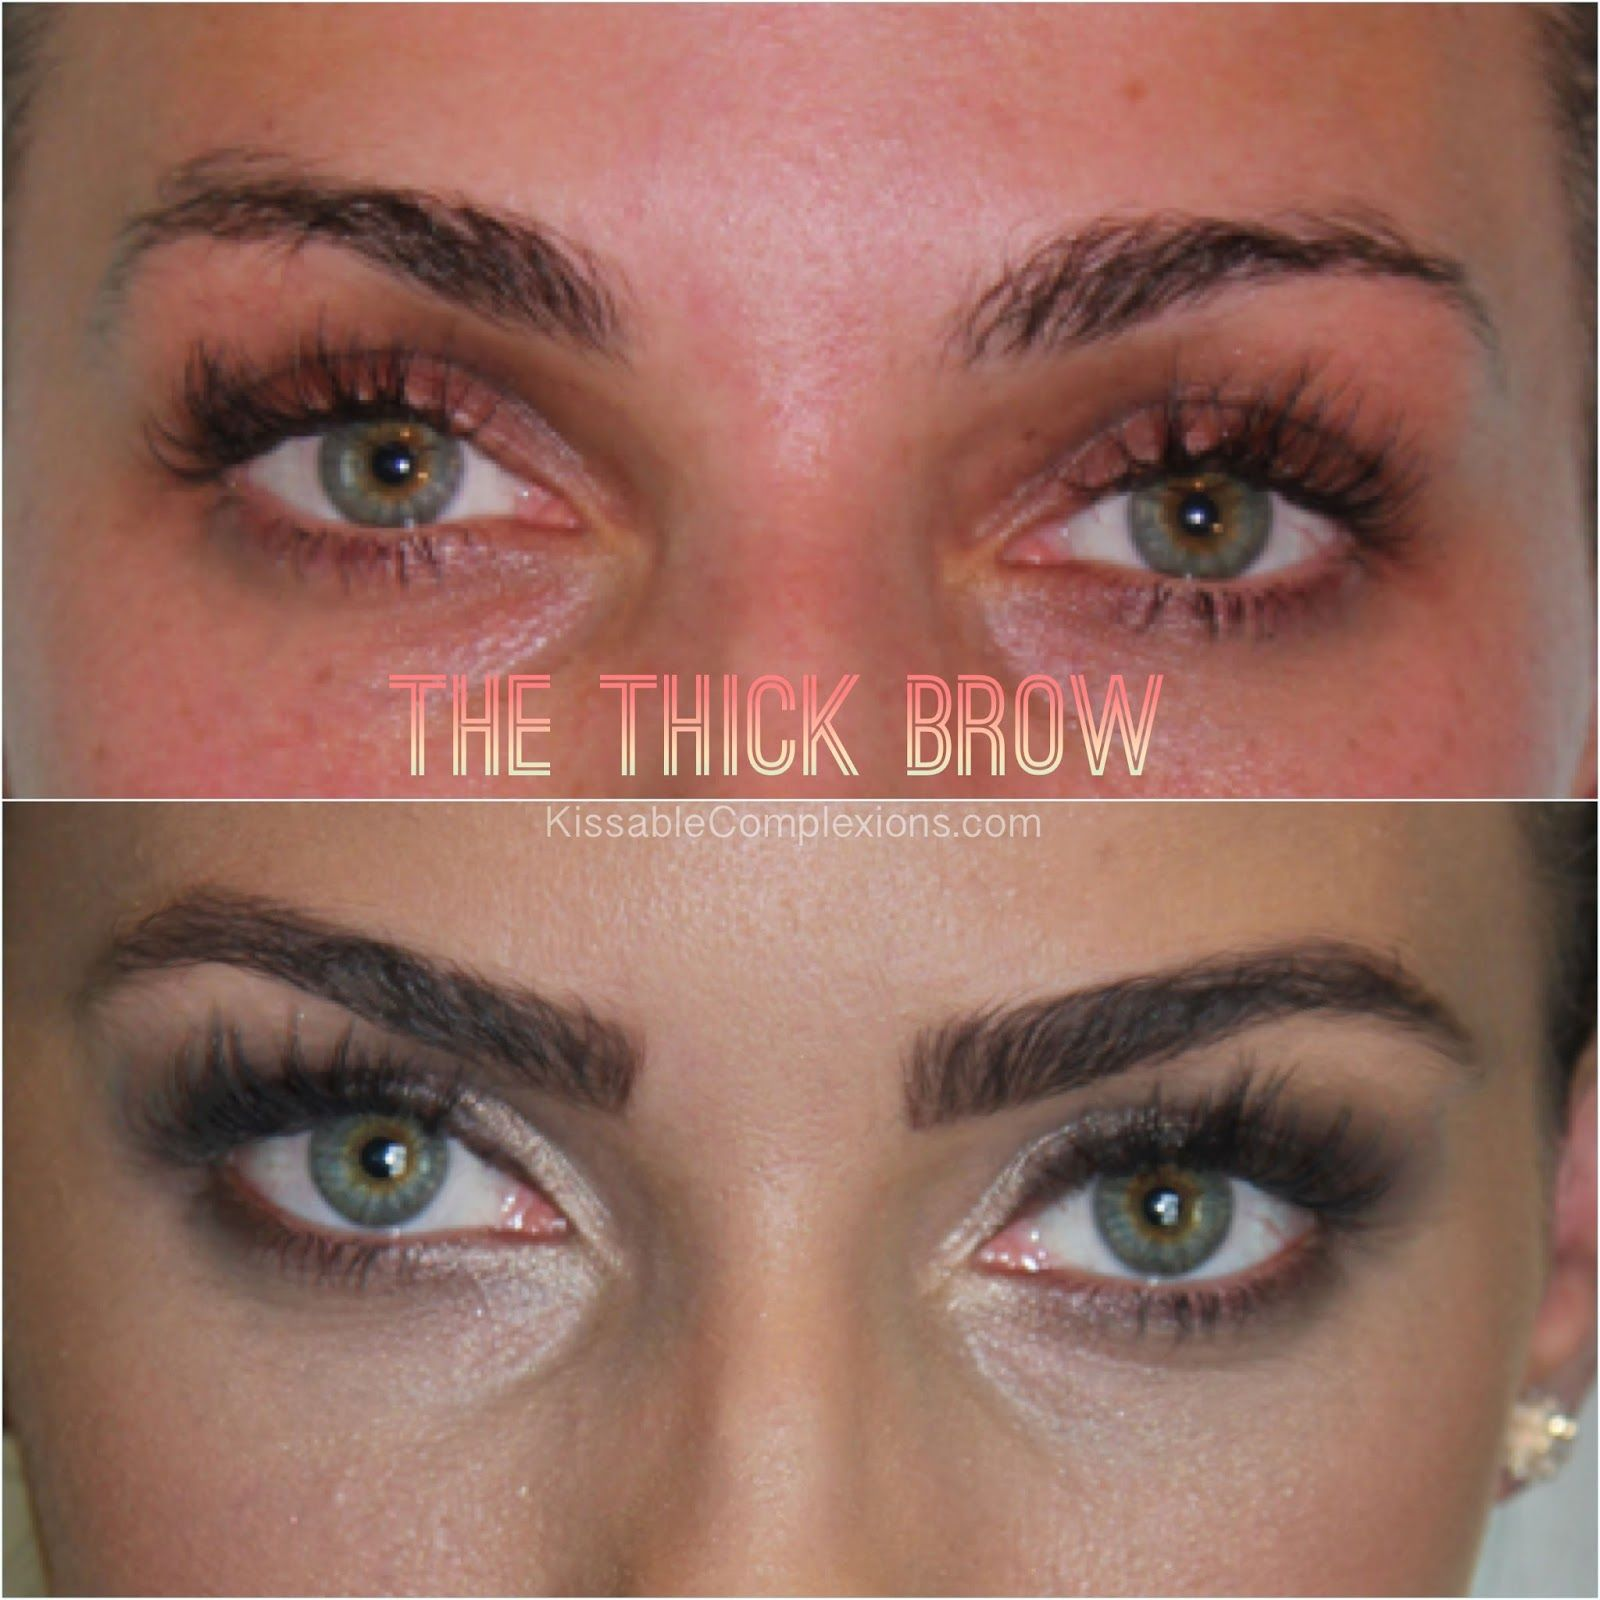 Called The Megan Fox Eyebrow Would Go Great With My Makeup For Prom